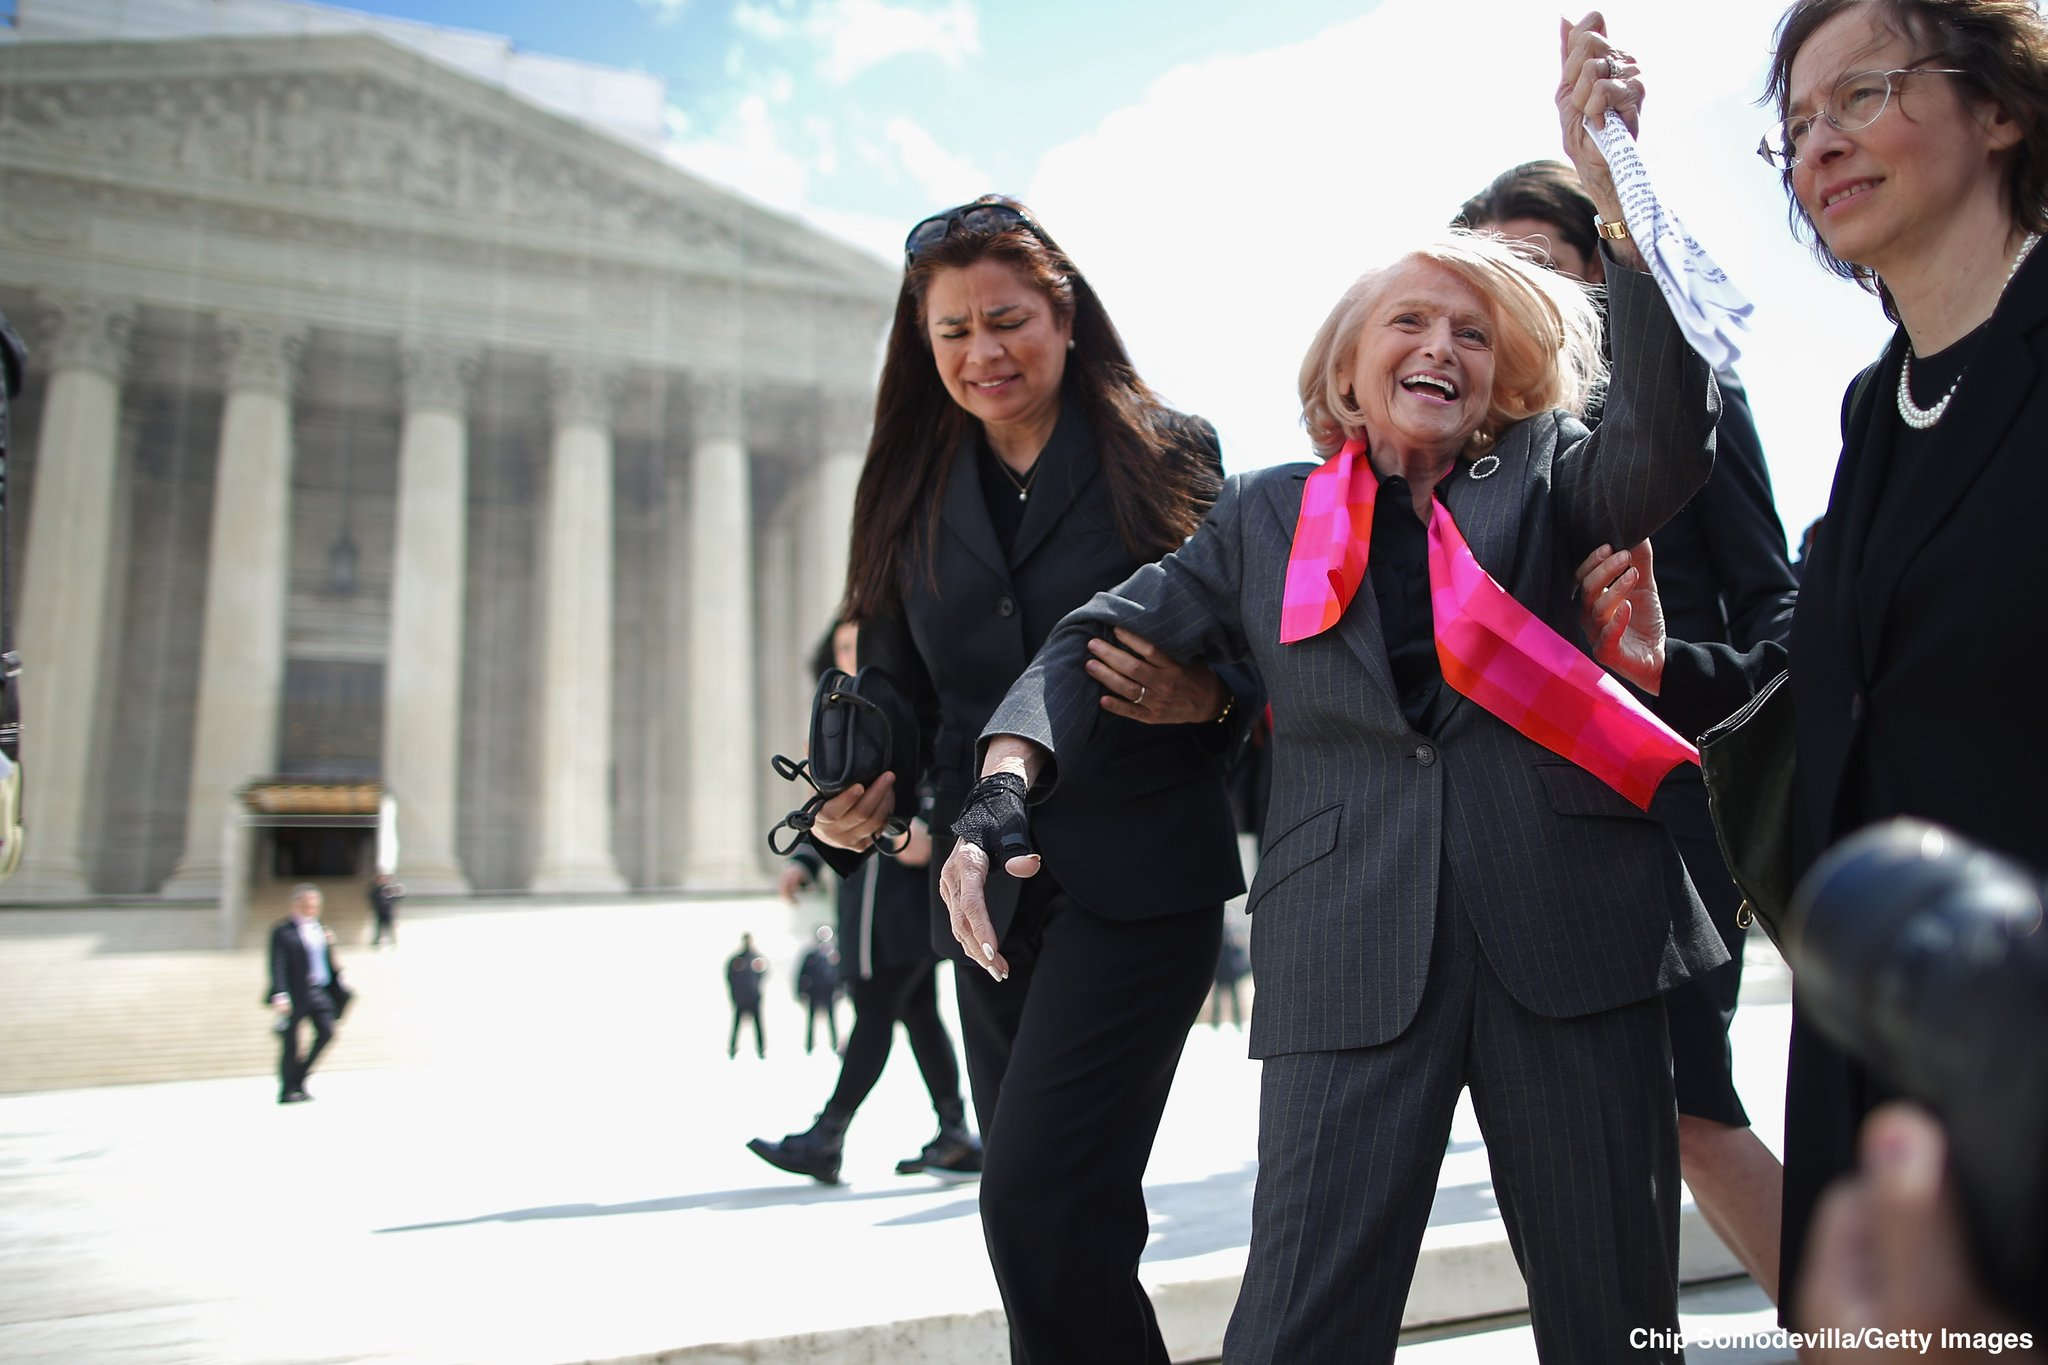 Edith Windsor, who played central role in end of federal gay marriage ban, dies at age 88: https://t.co/J6omuEh5d7 https://t.co/Y72mlsDMcC